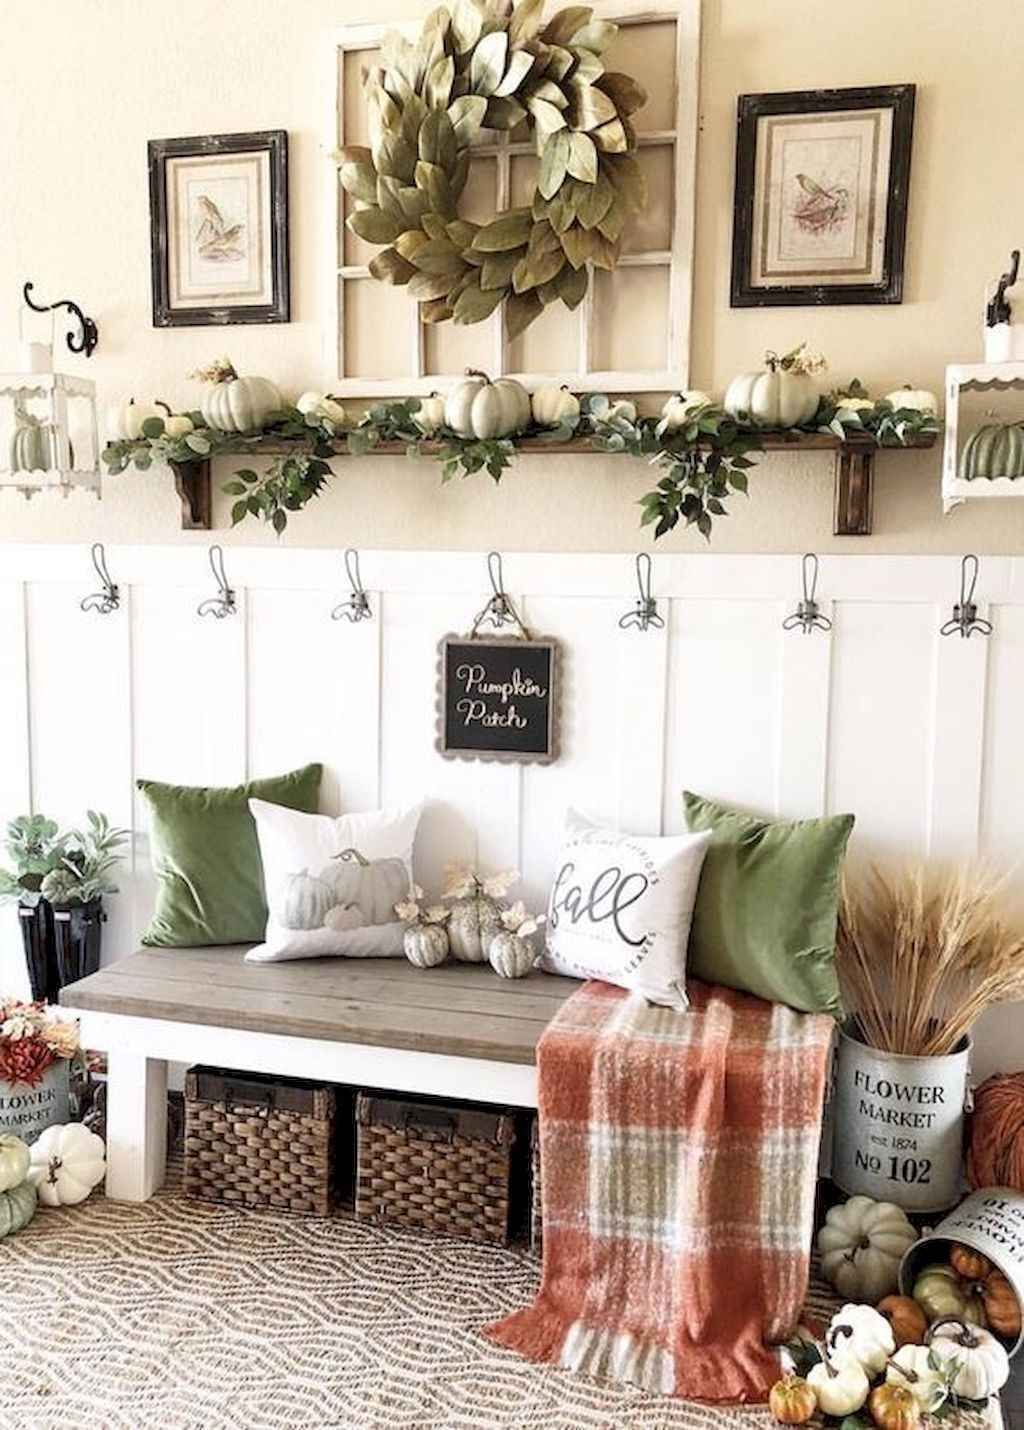 10+ Living room makeovers 2020 info